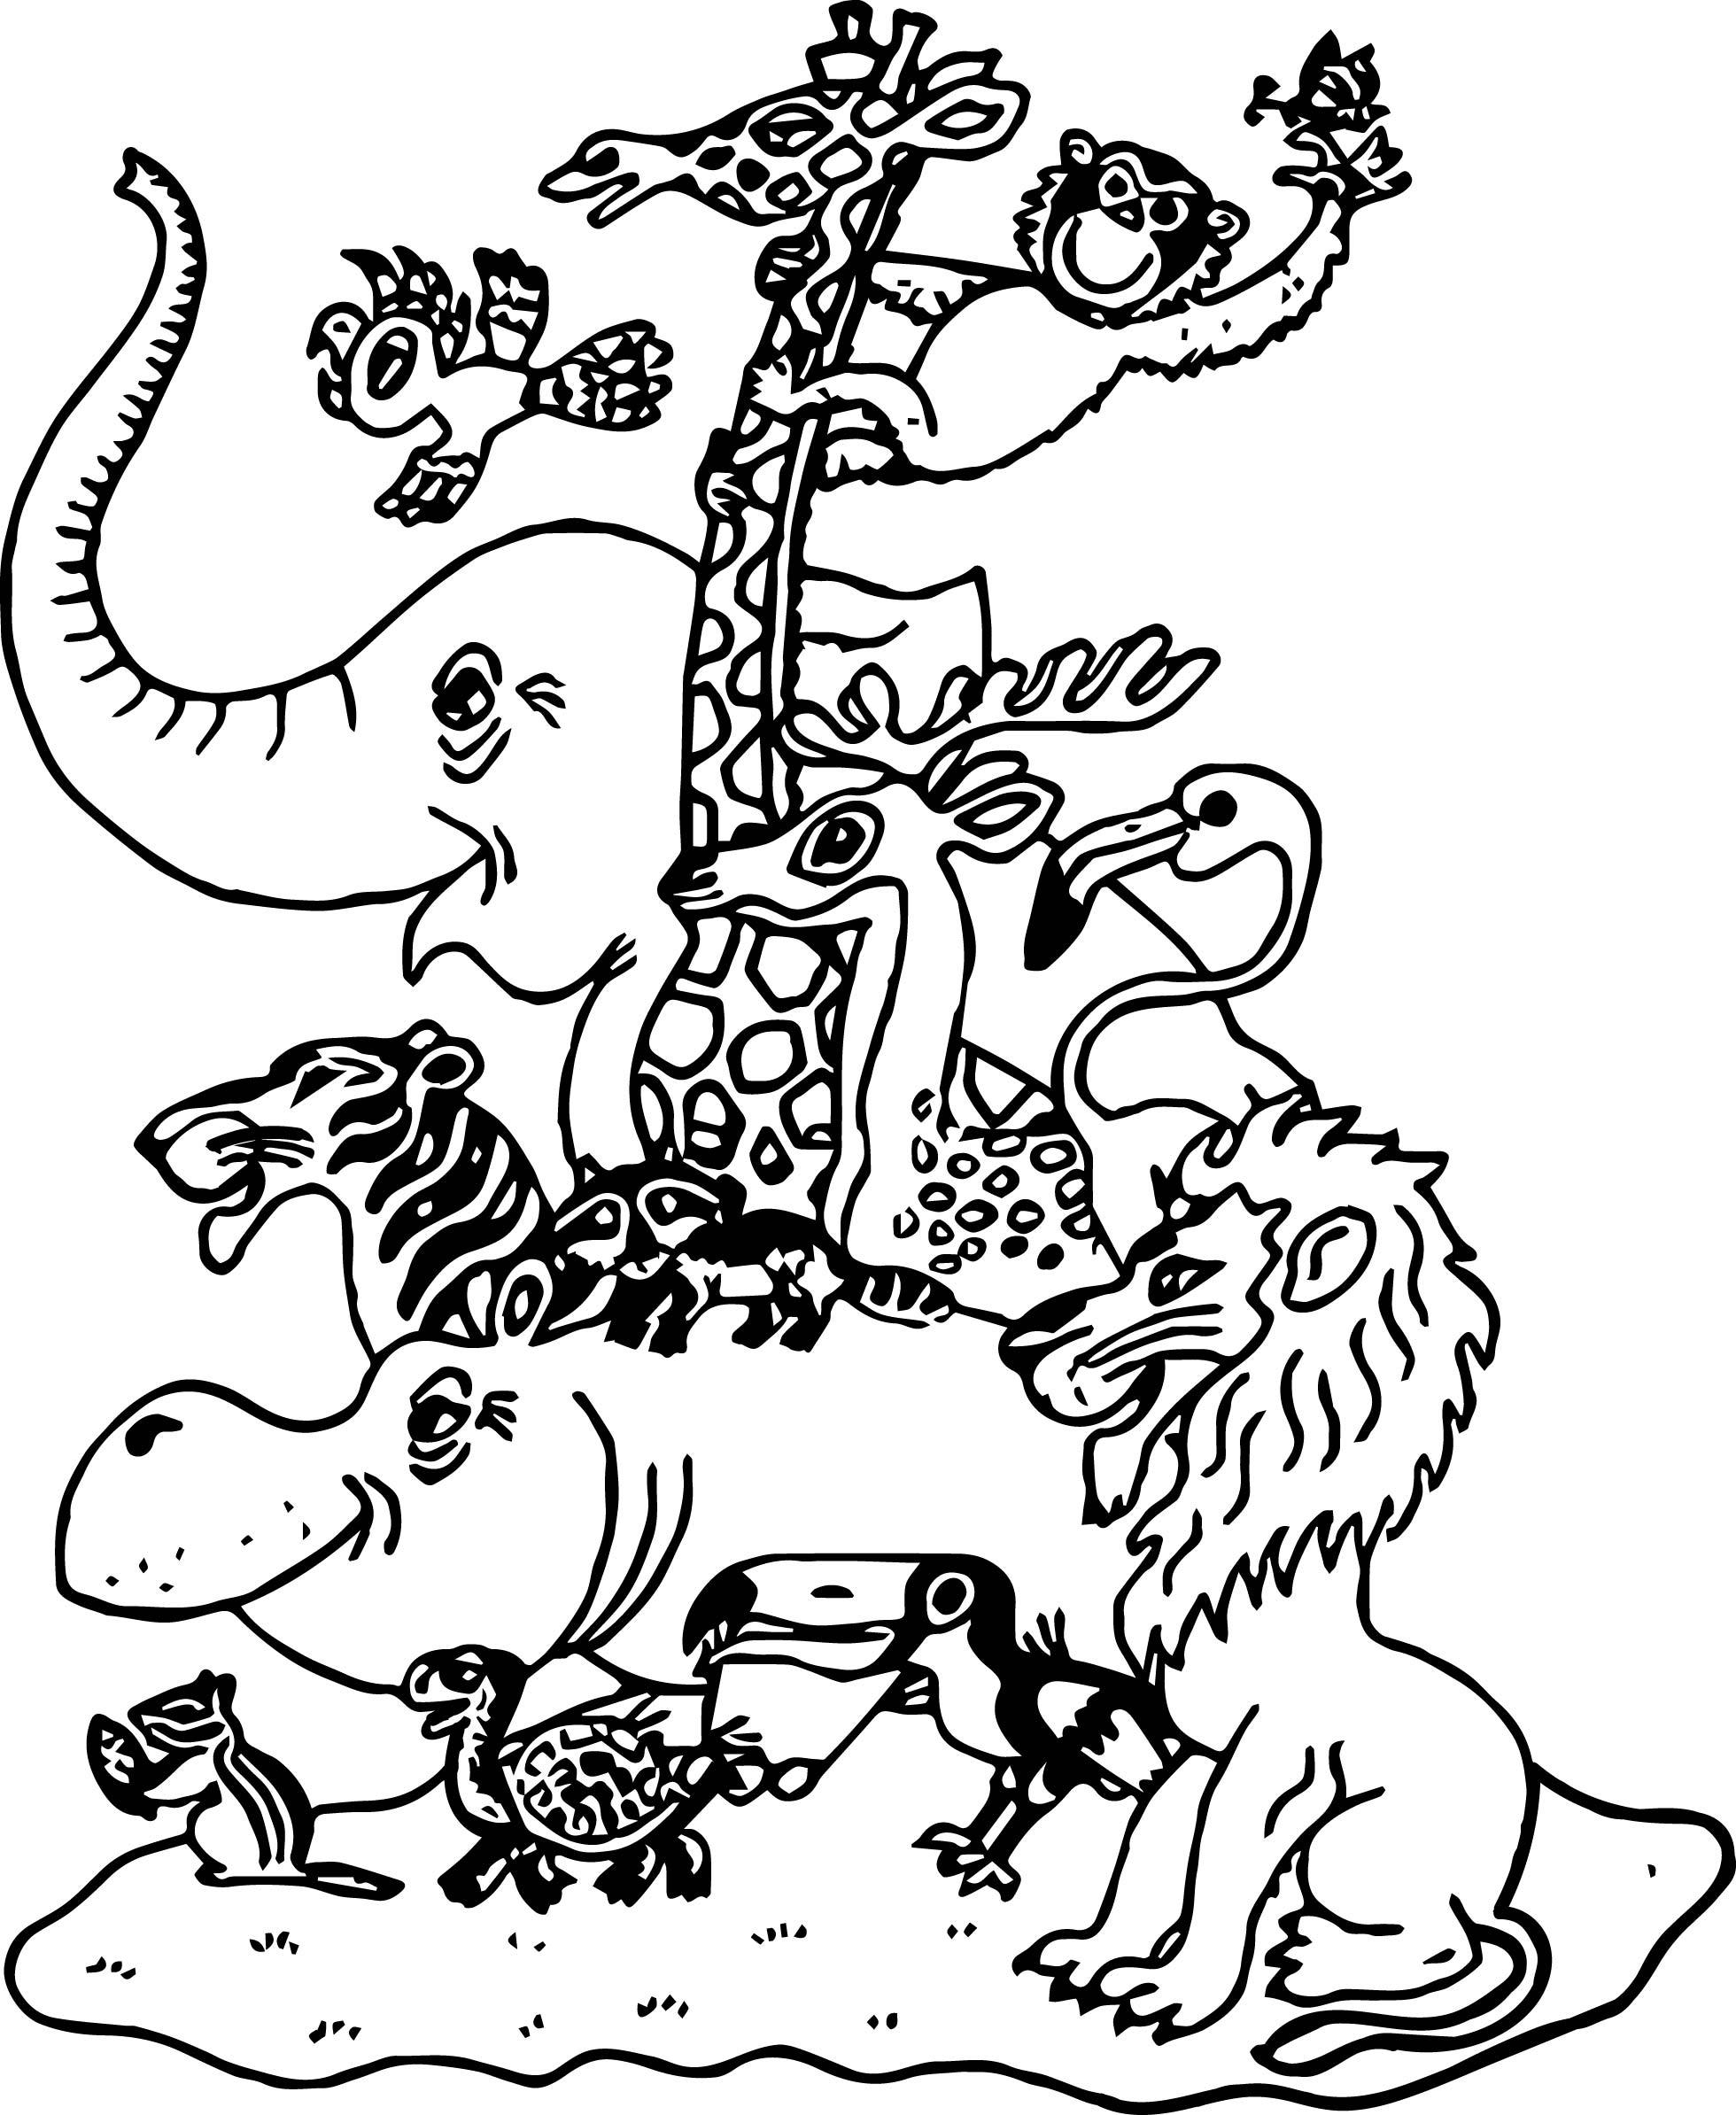 1960x2388 Awesome Coloring Picture Of The Boy Who Cried Wolf See More